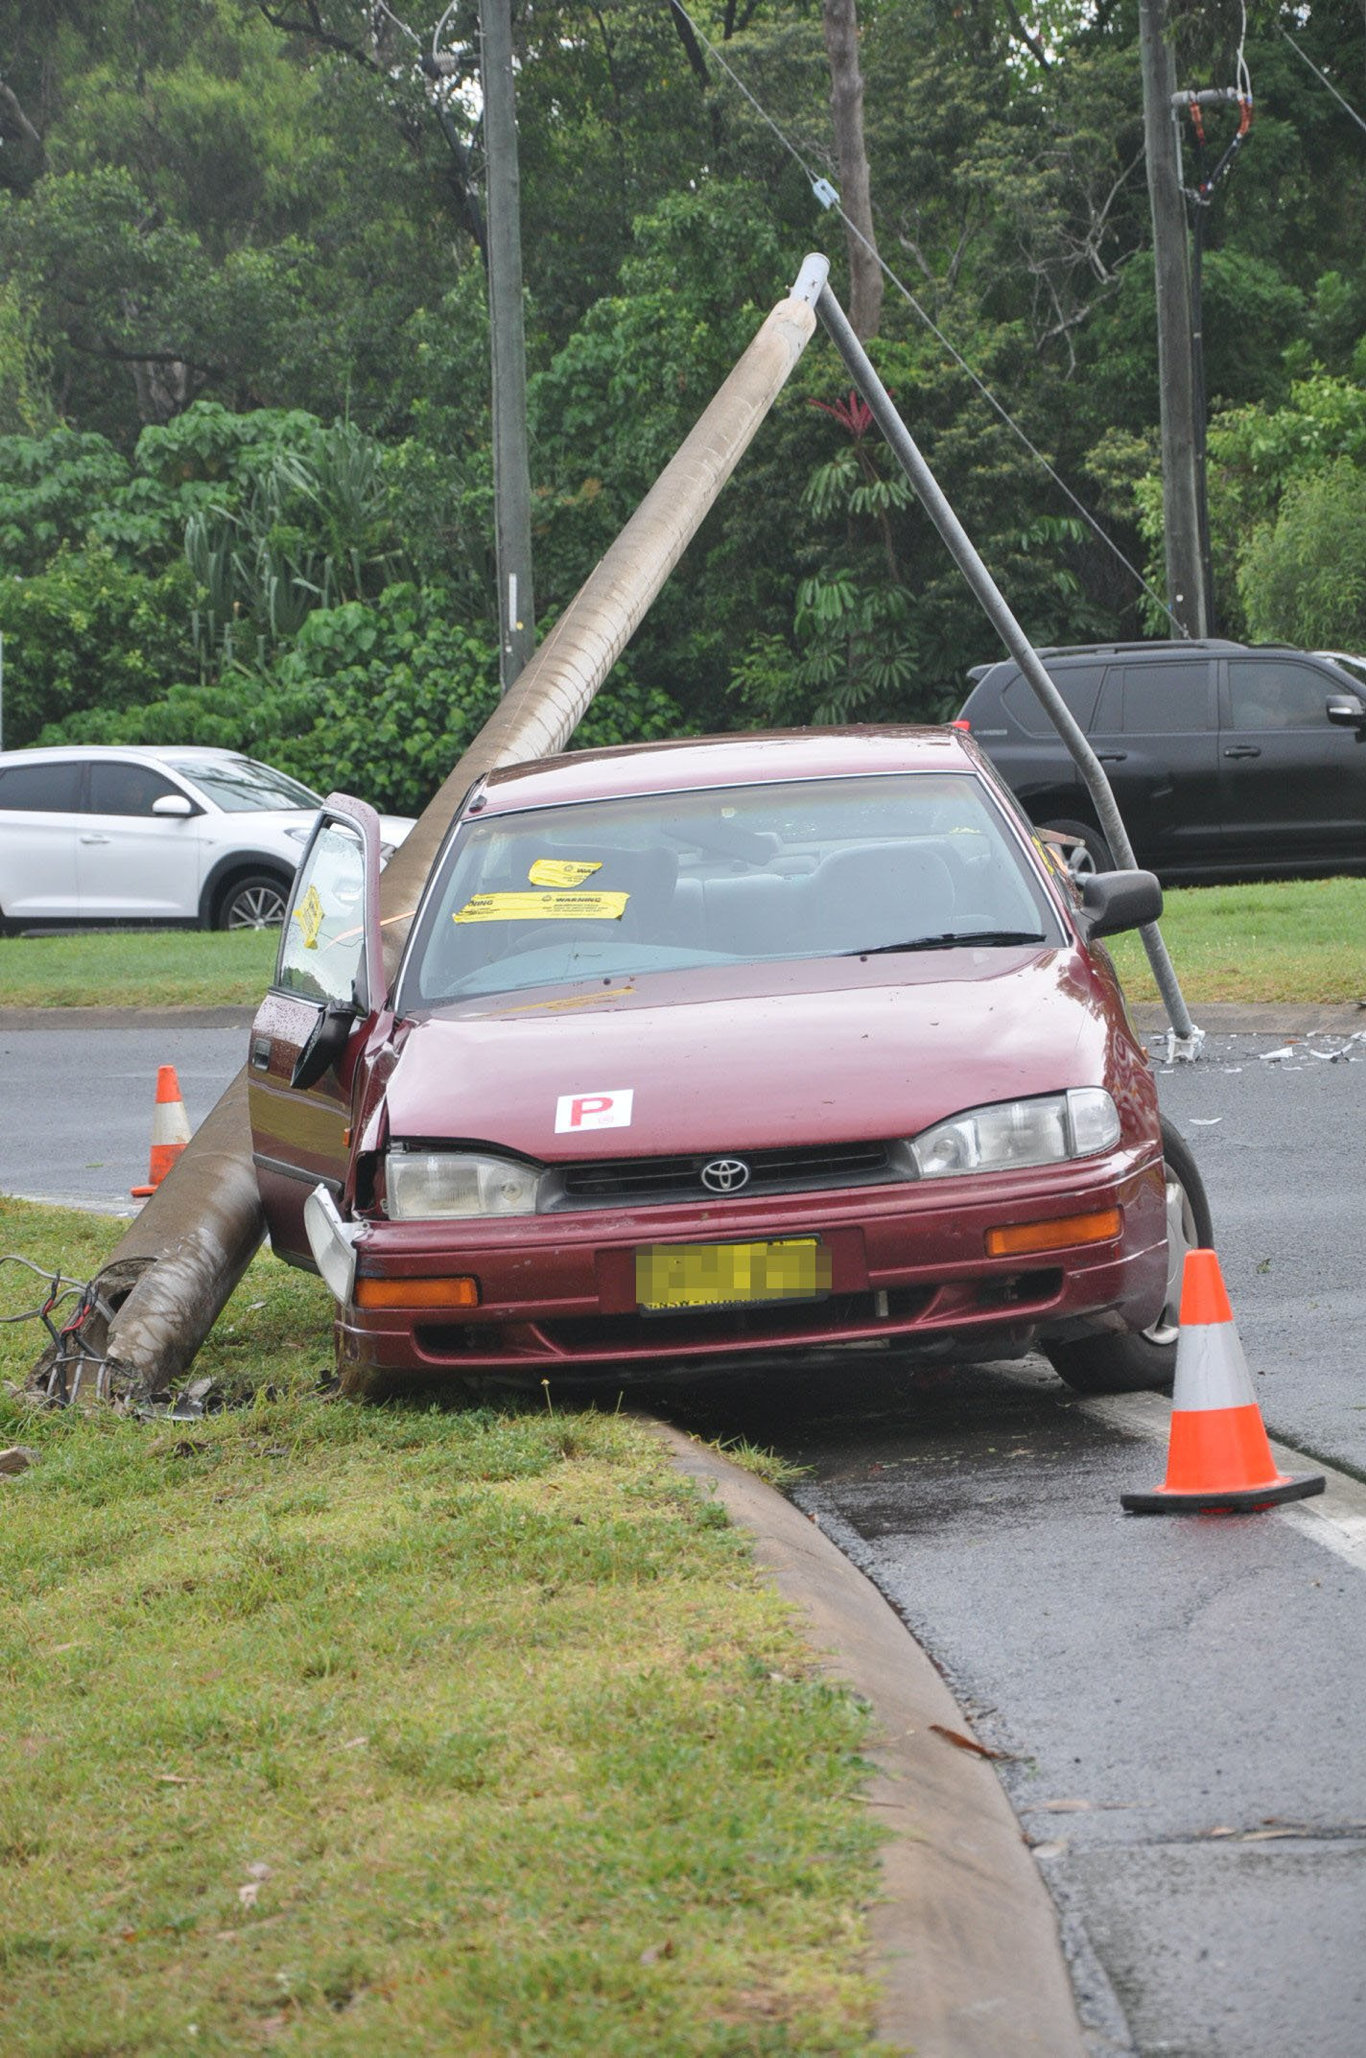 The female driver of the car that hit a power pole on Tanby Road roundabout in Yeppoon was taken to Yeppoon Hospital